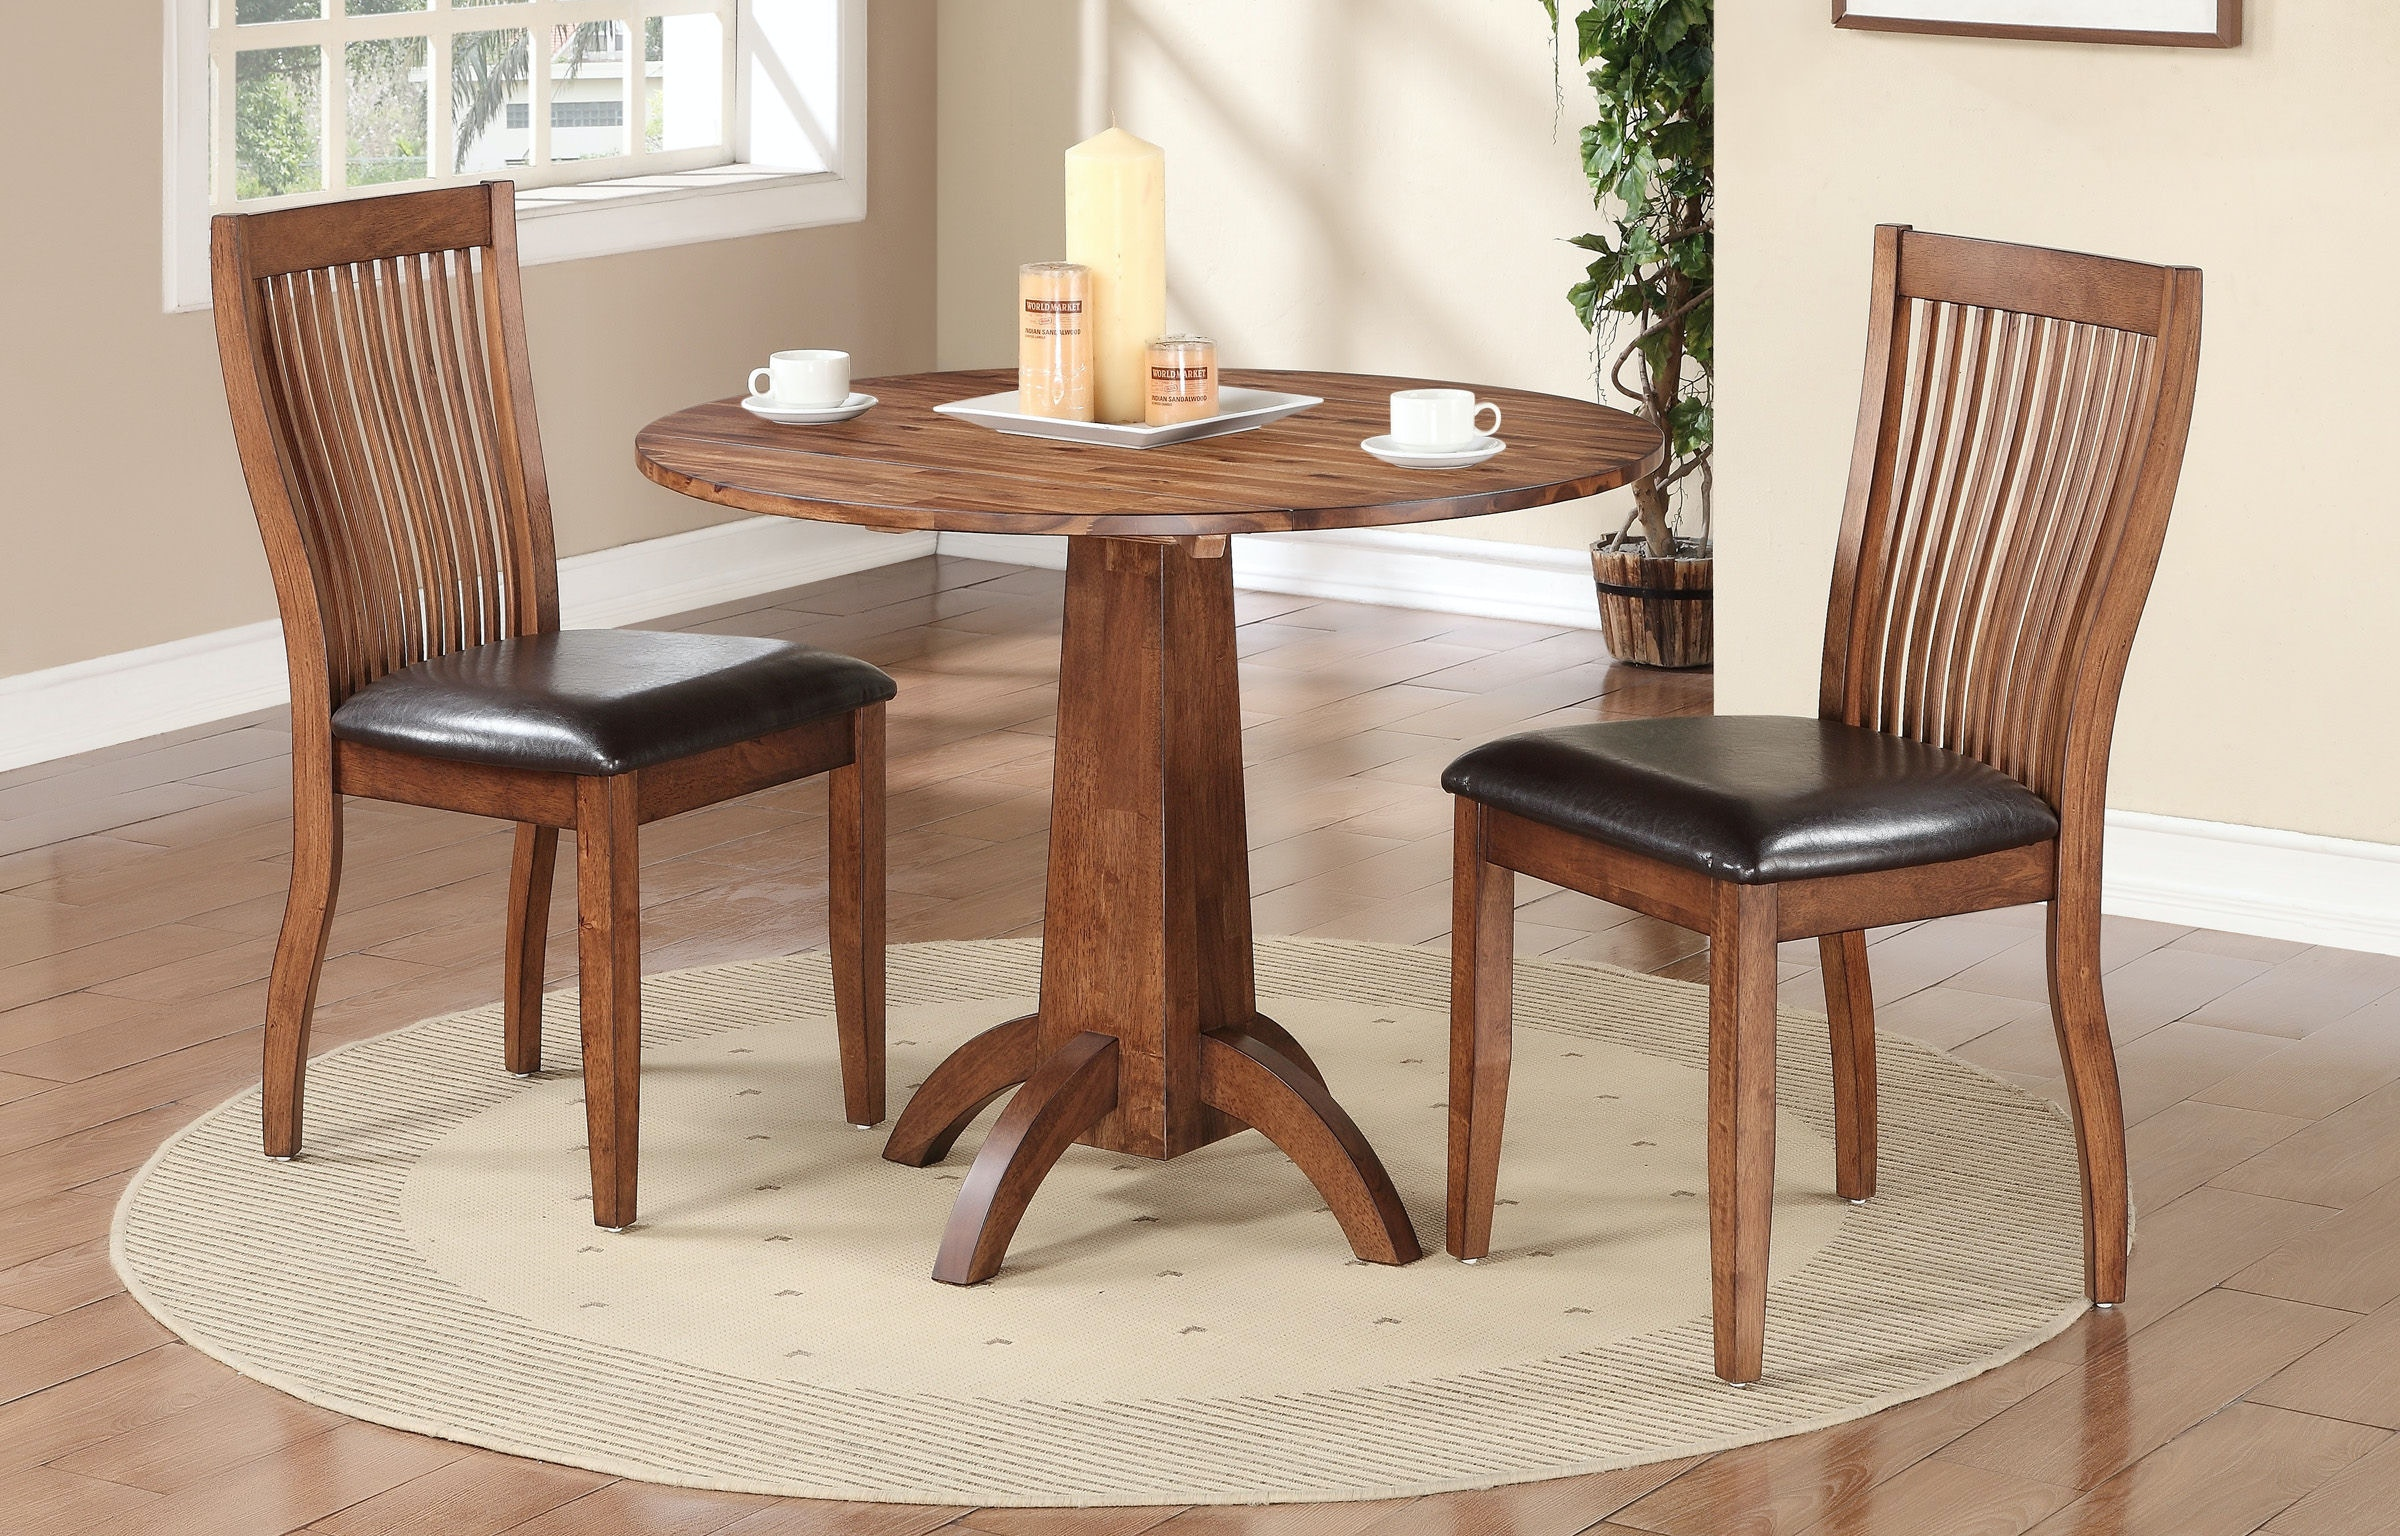 Merveilleux Winners Only Dining Room 40 Inches Round Table DFB14040 At Factory Direct  Furniture